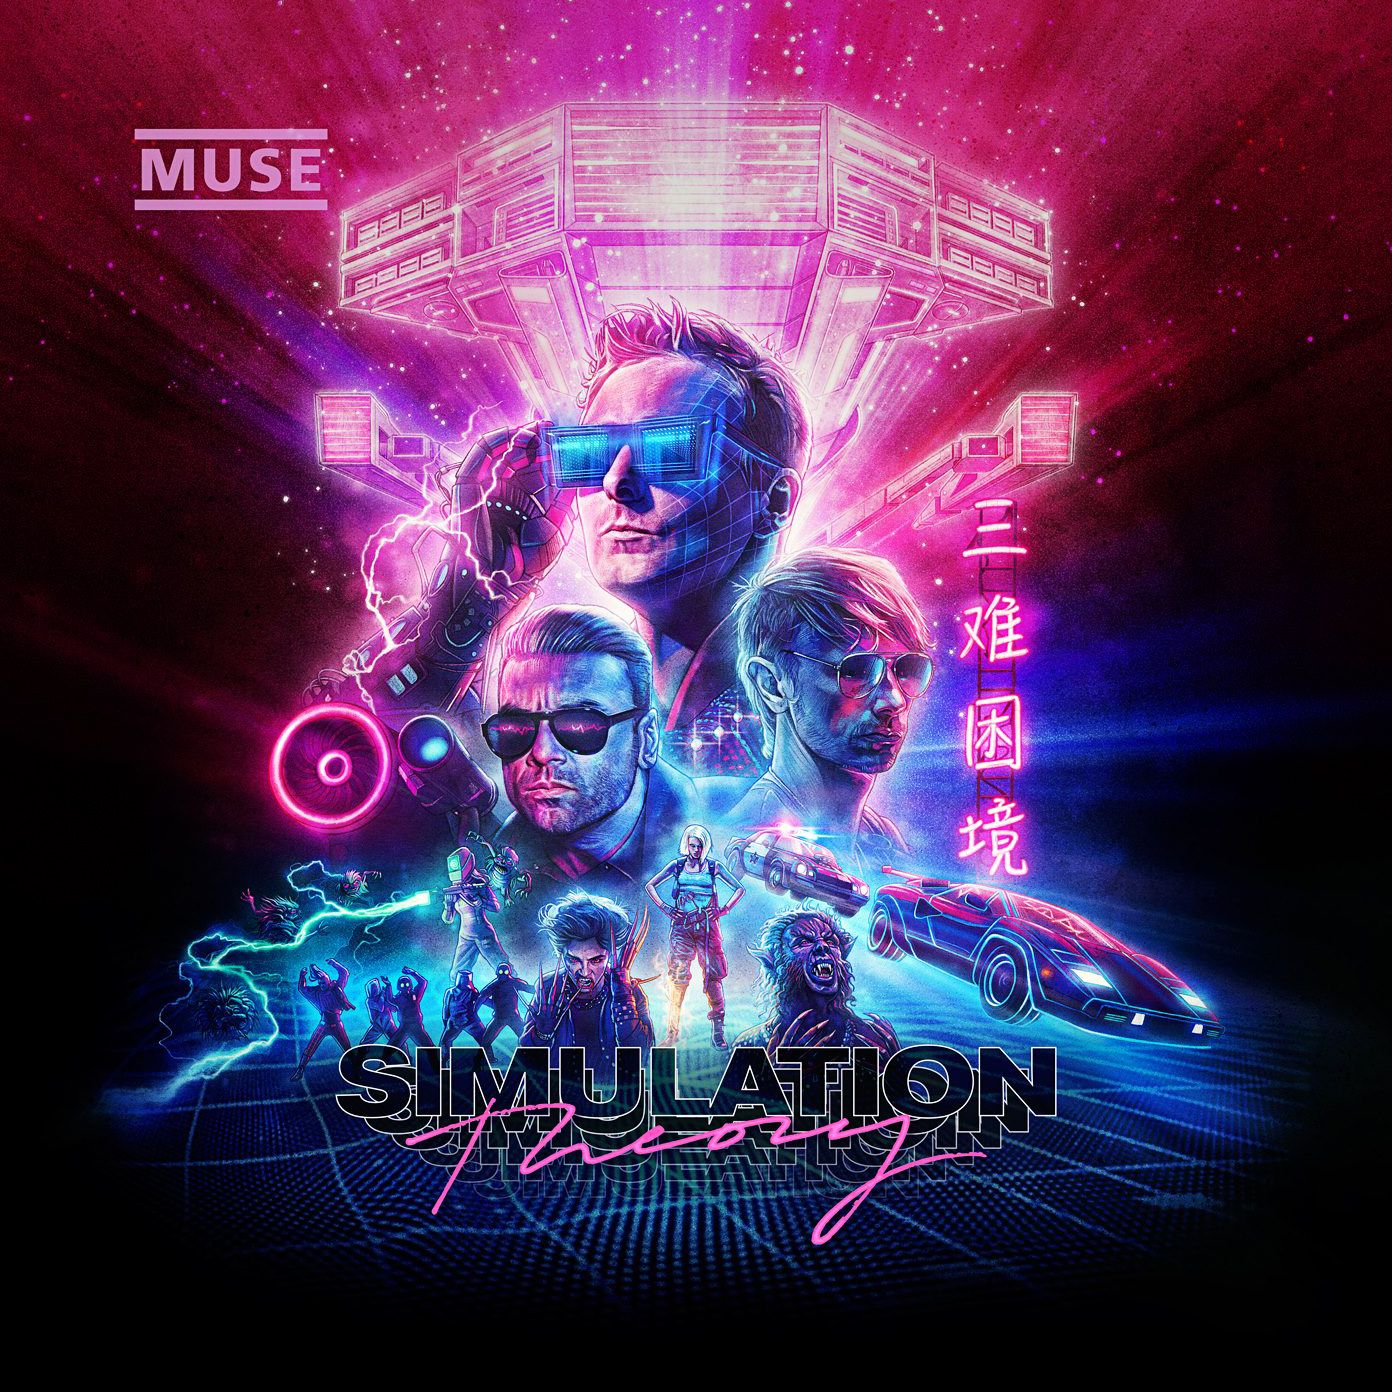 muse-simulation-theory-art-by-kyle-lambert